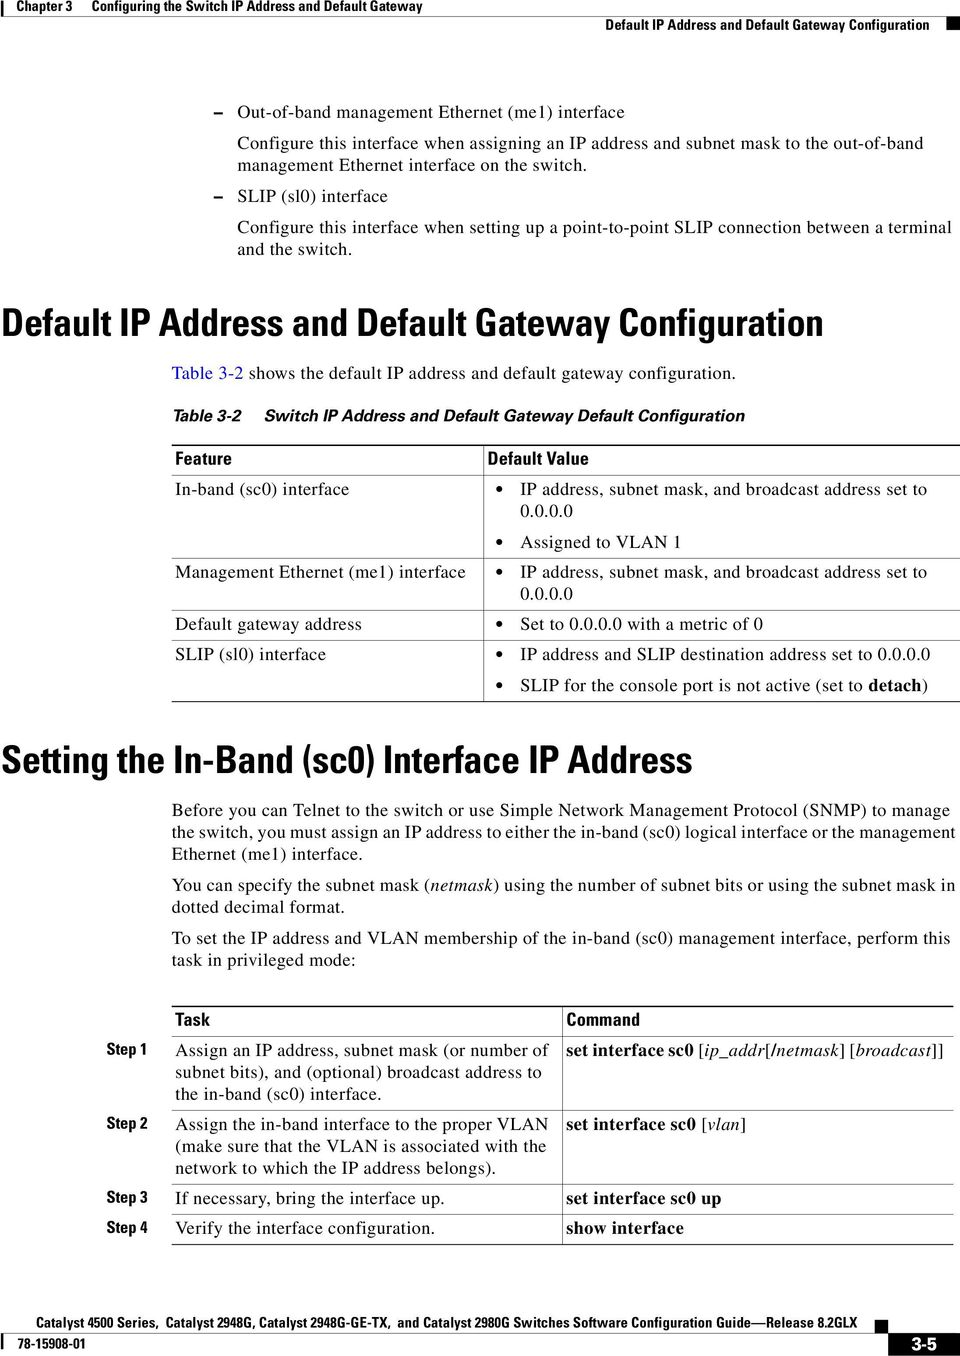 Configuring the Switch IP Address and Default Gateway - PDF